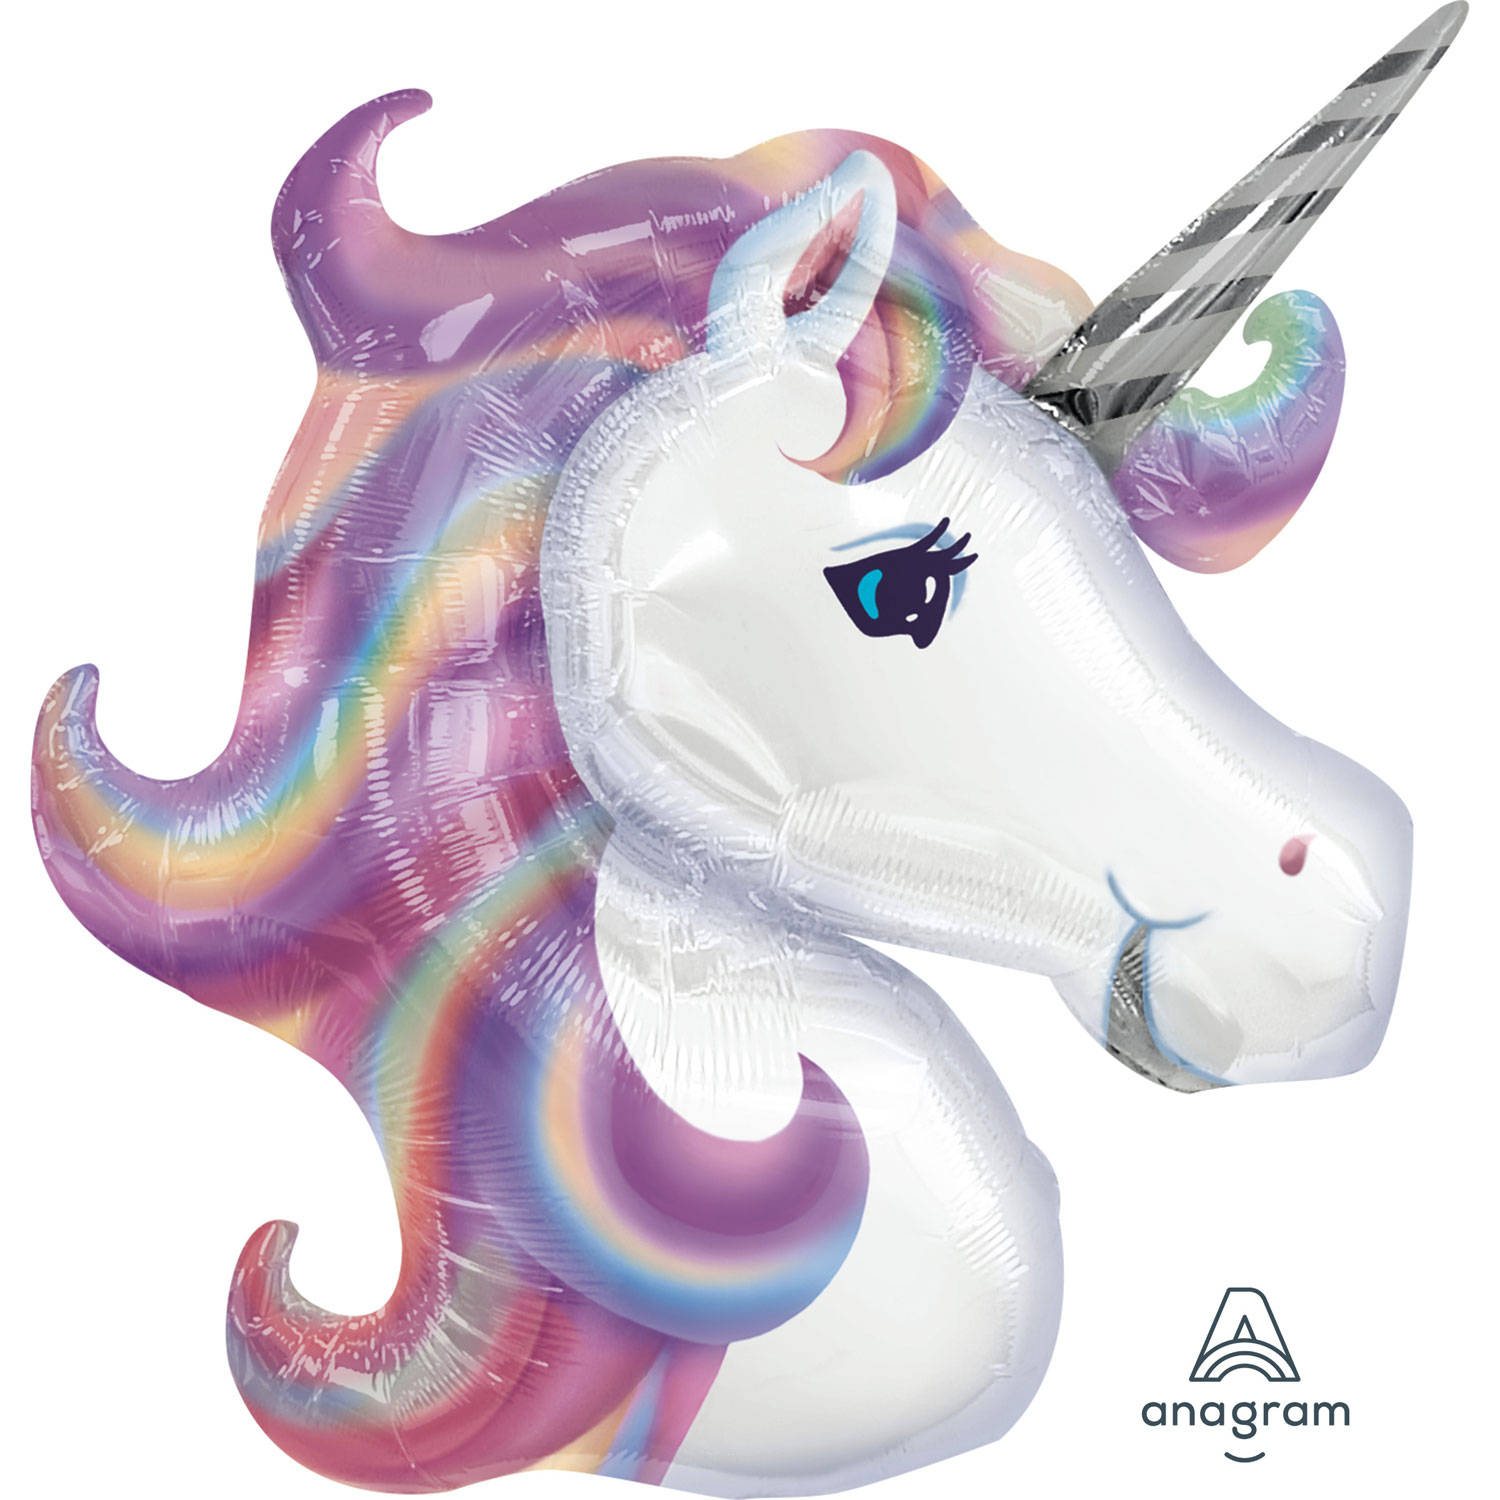 Folienballon Supershape Regenbogen Einhorn pastell